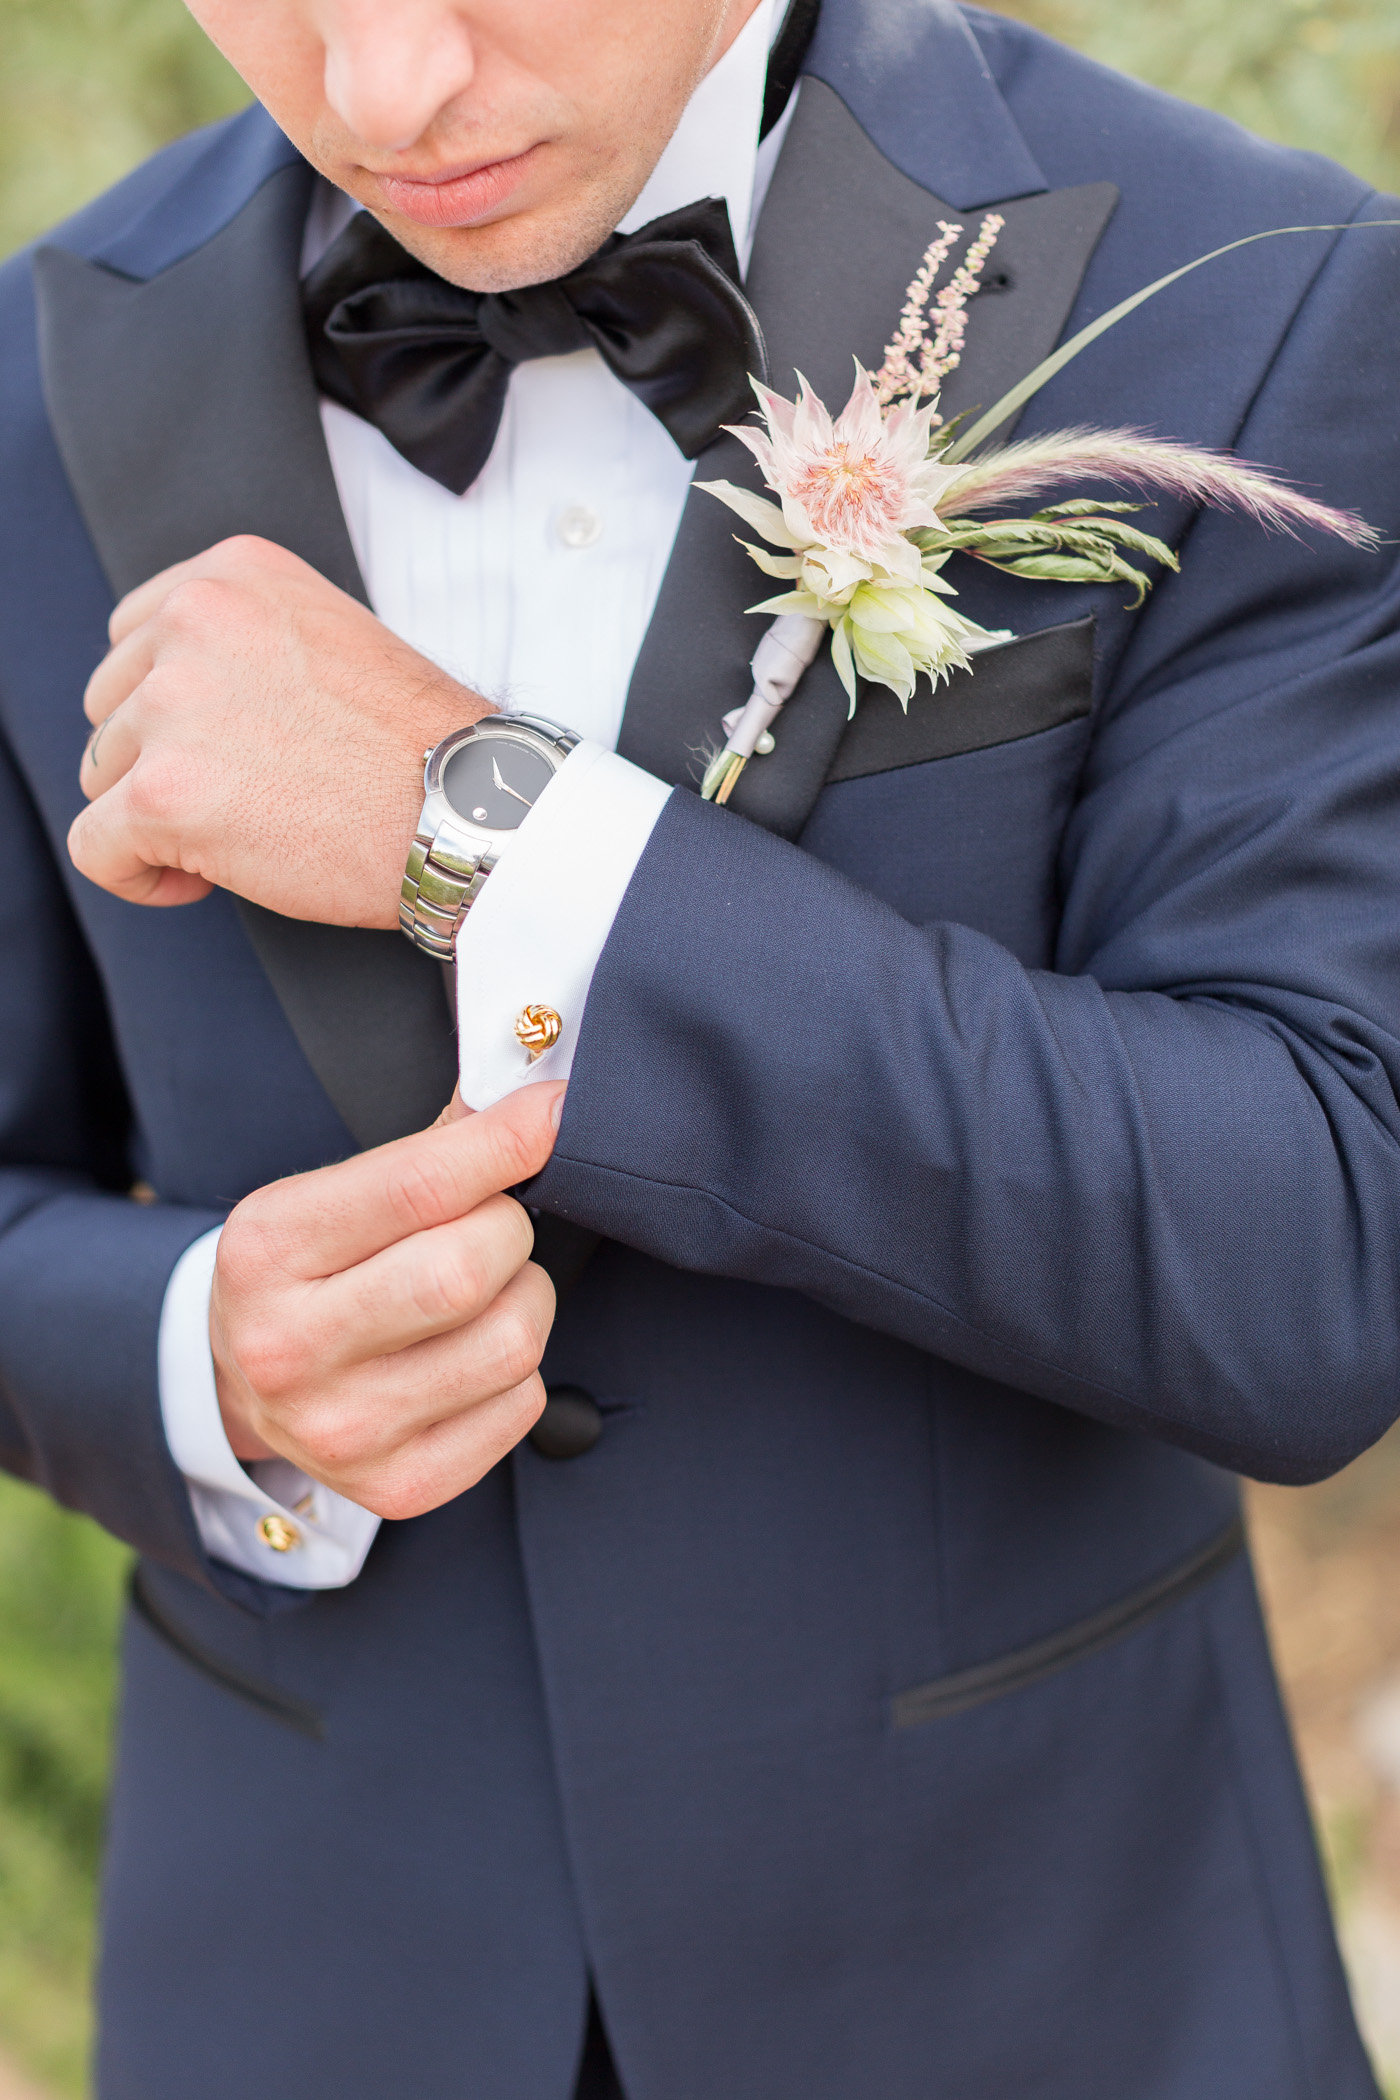 grooms accessories - photo by Karlee K Photography http://ruffledblog.com/cheerful-desert-wedding-inspiration-with-bright-yellow